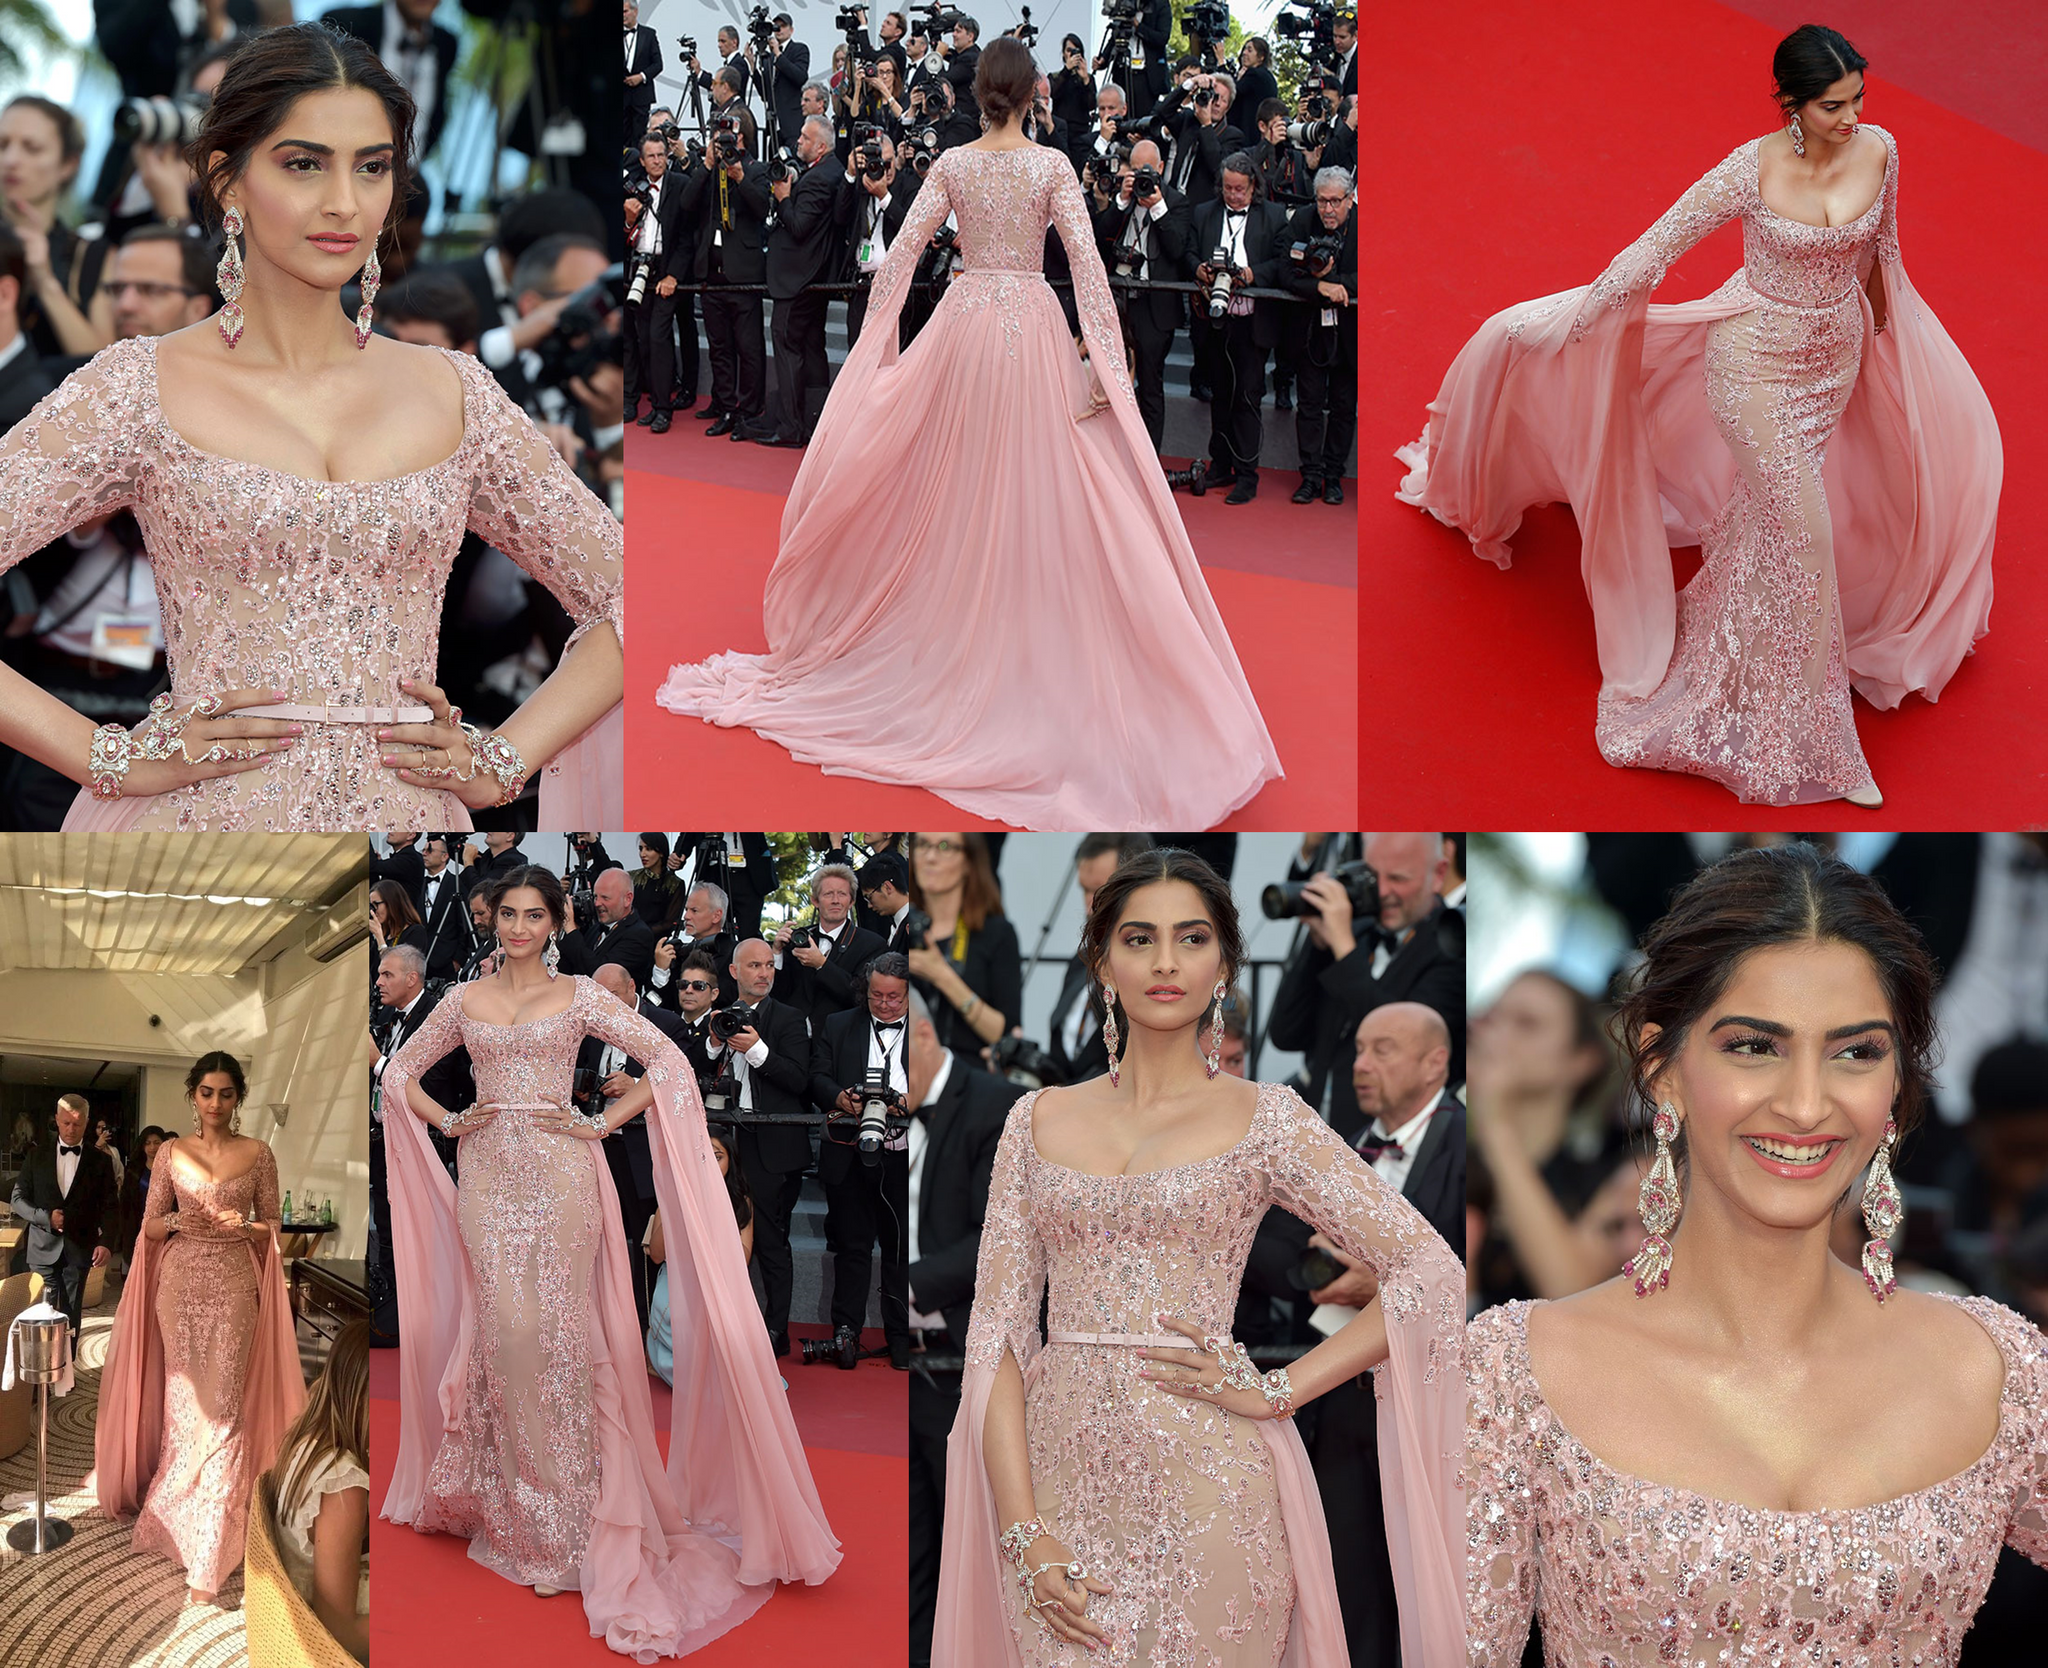 Sonam Kapoor Looked Gorgeous in Pink Gown